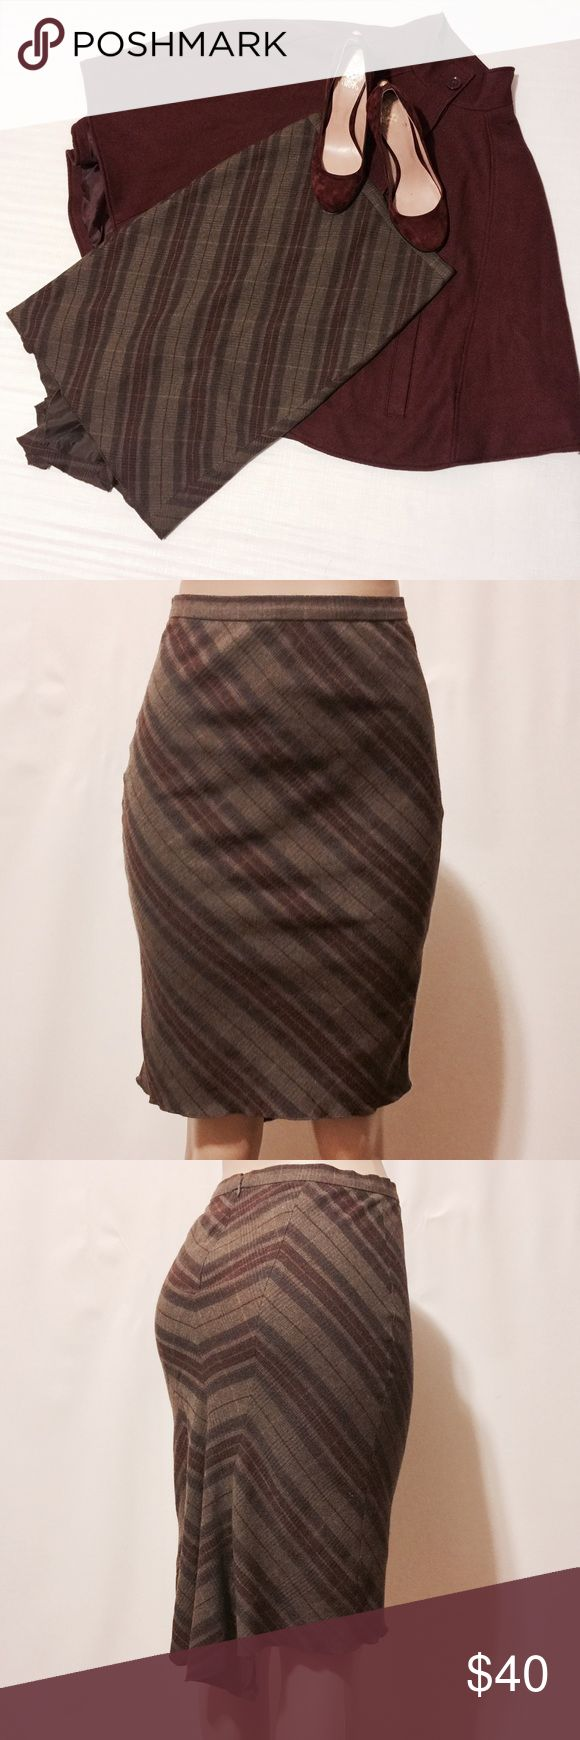 "BCBGMAXAZRIA Wool Plaid Fitted Bias Skirt Sz 0 Amazingly sexy! Olive, plum and tan bias plaid skirt. Fitted with back trumpet pleat for that extra pizzazz. FITTED! 3/4"" rigid waistband with center back invisible zipper closure. 53% Wool 44% Cotton 3% Other 100% Acetate lining Dry Clean Only 28"" Waist 34"" Hips 42"" Sweep 24"" Overall length #TH0701016 BCBGMaxAzria Skirts Midi"